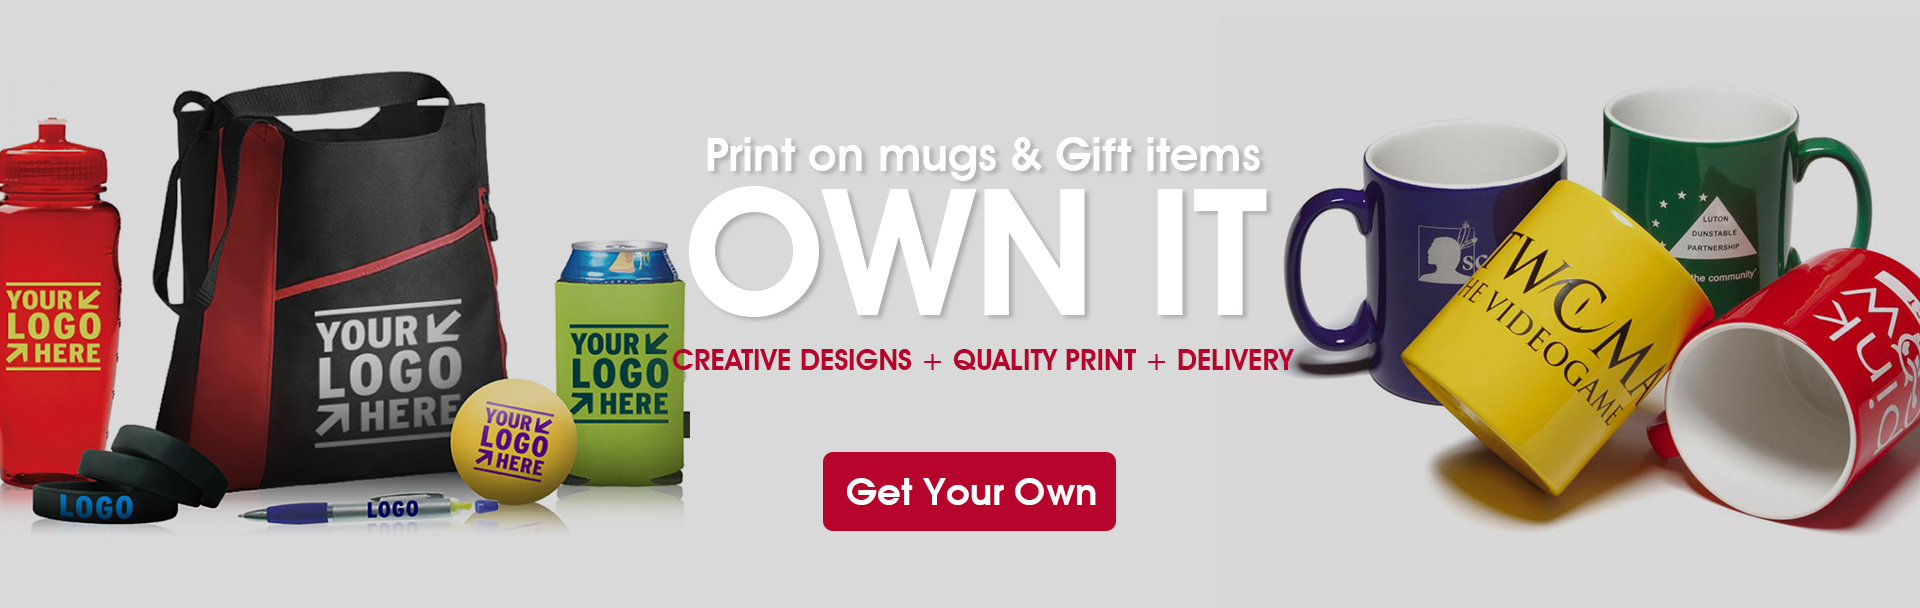 Corporate Gifts Printing in sector 3 noida